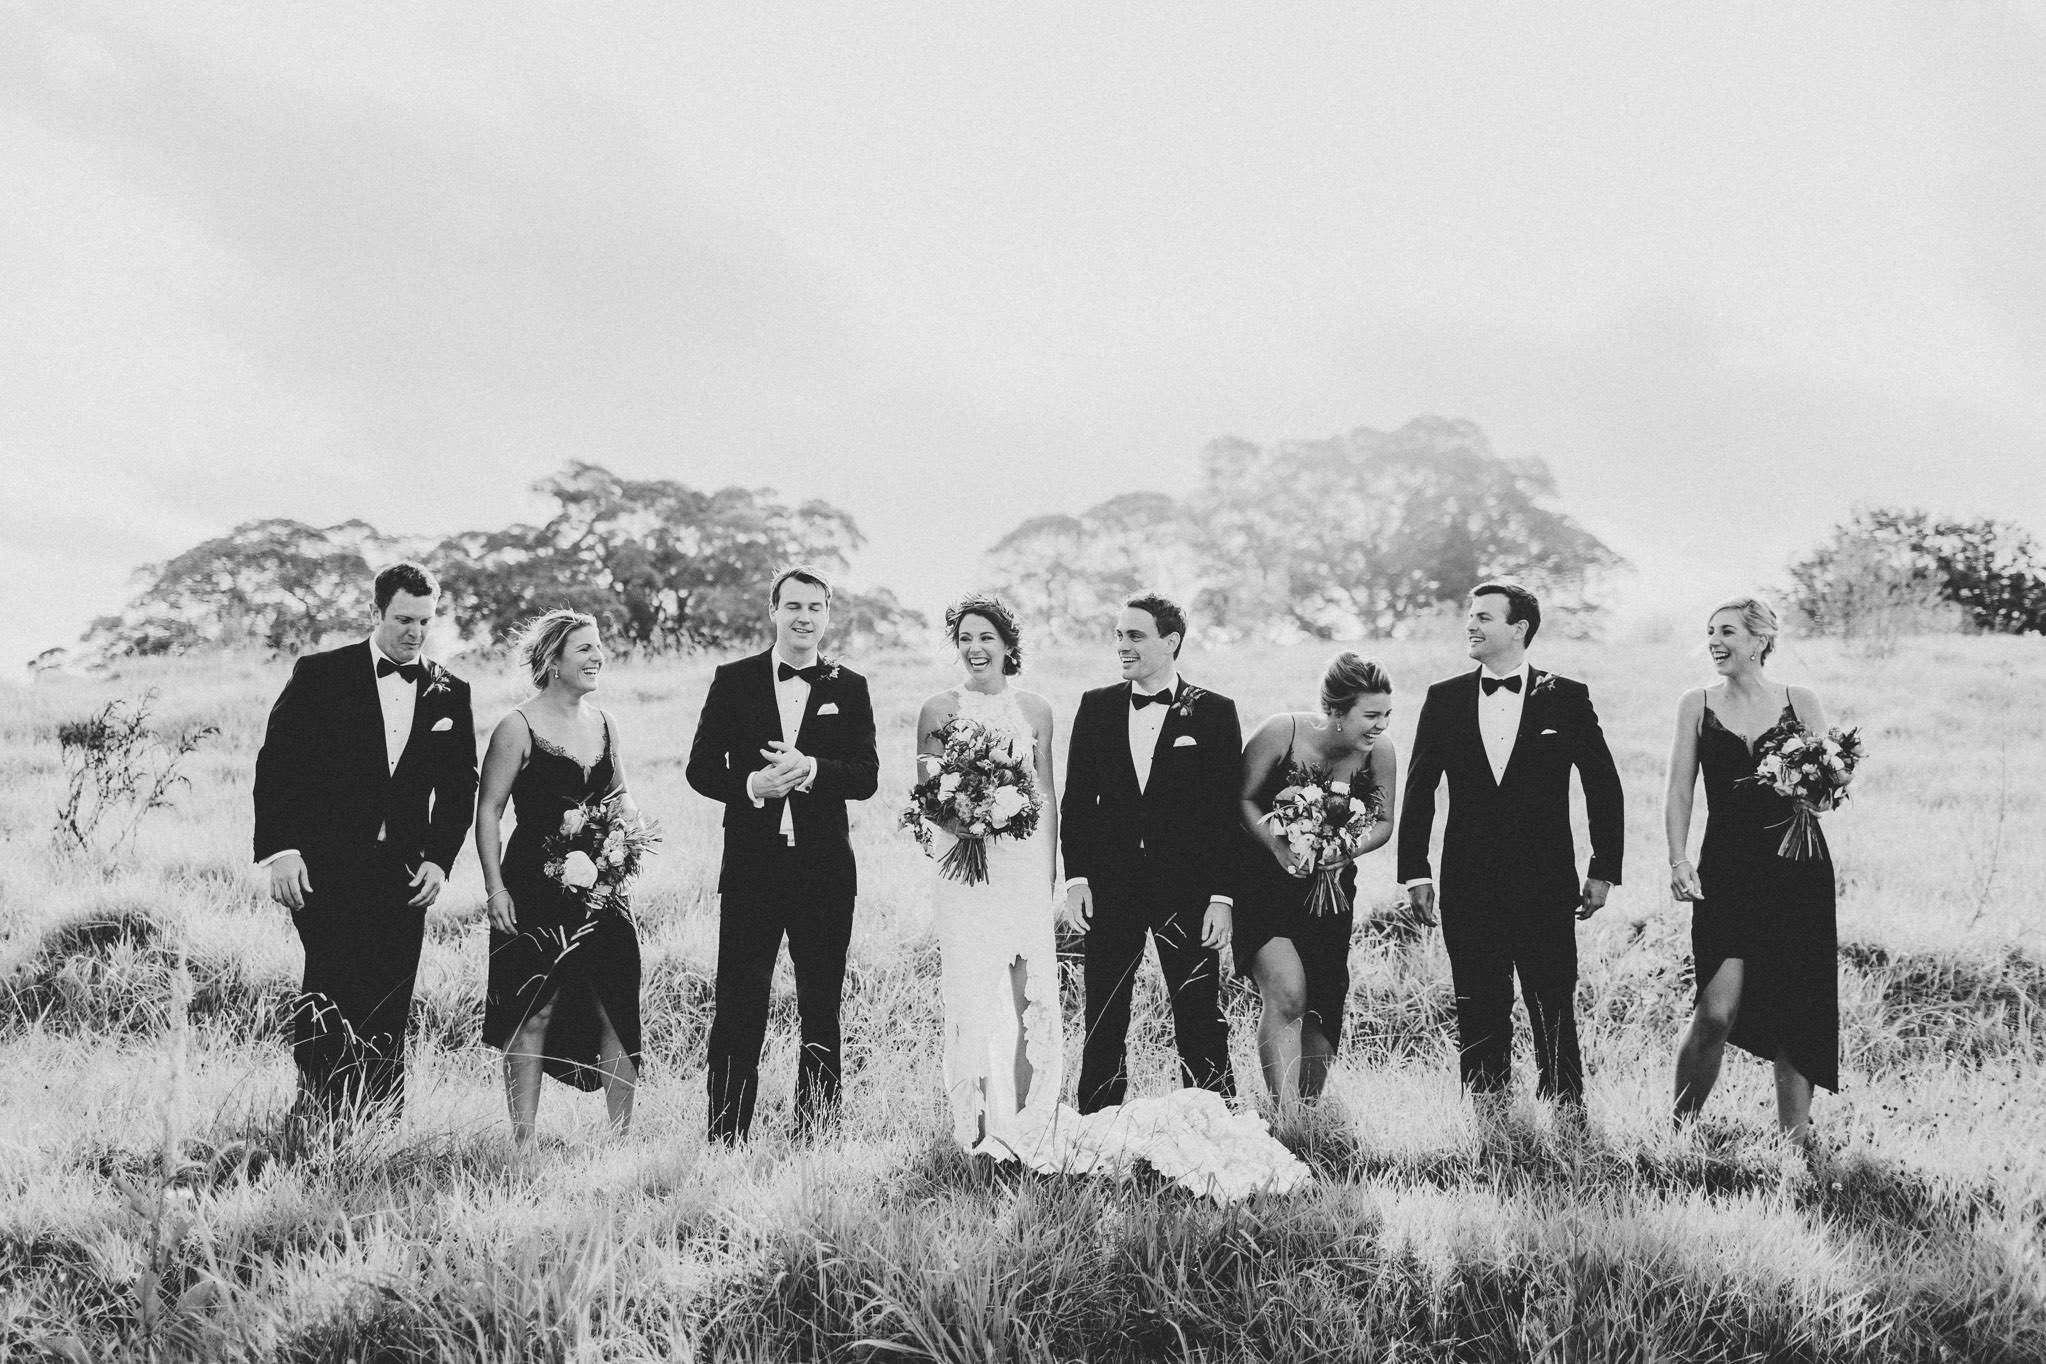 TocalHomestead_WeddingPhotography_LaurenAnnePhotography-1100.jpg